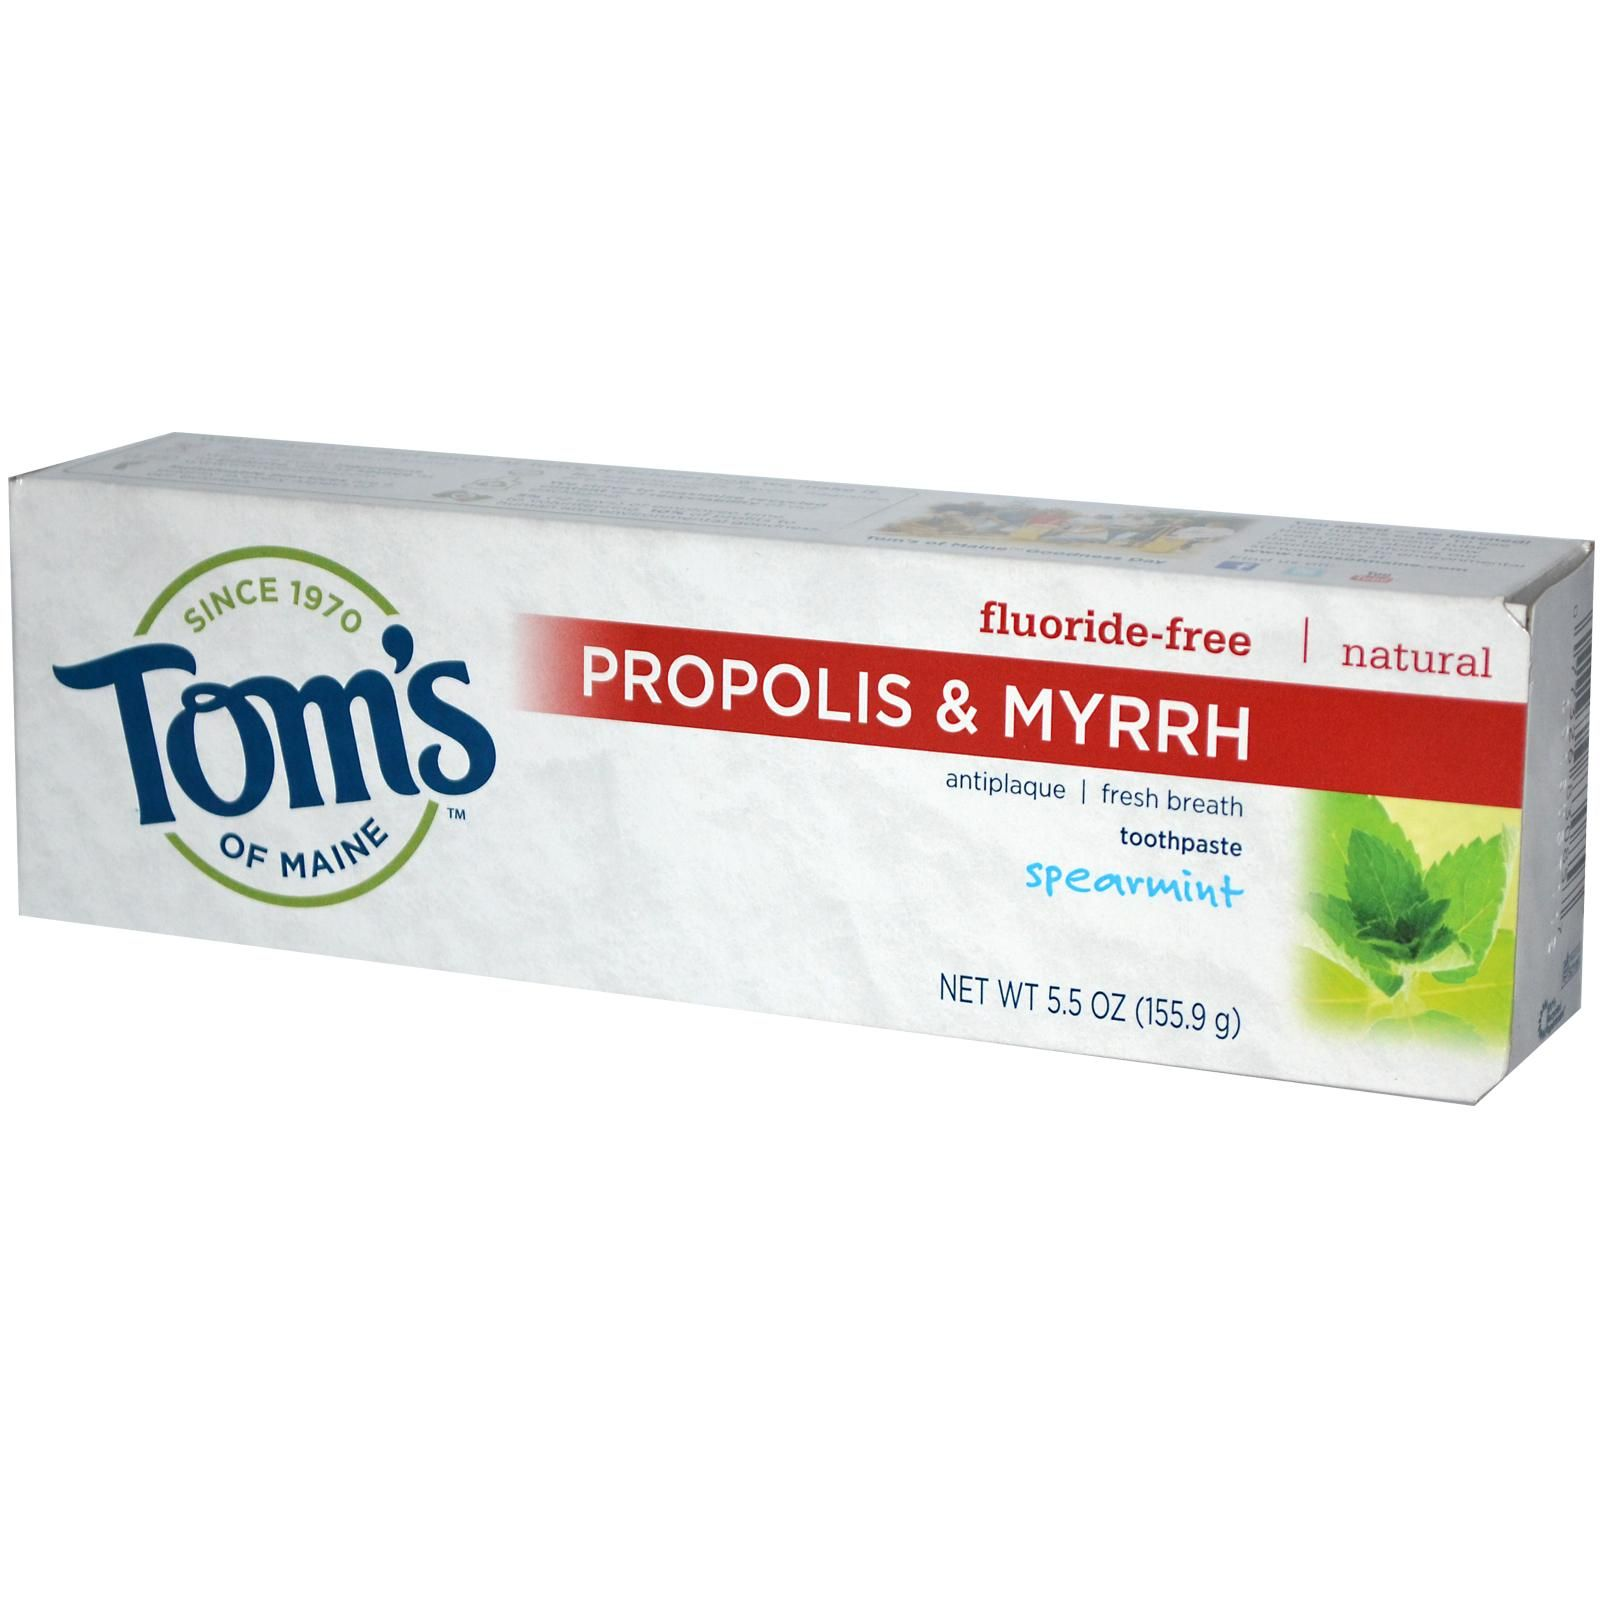 This is my favorite Tom's toothpaste - the propolis and myrrh has helped me achieve better dental visit results for years.